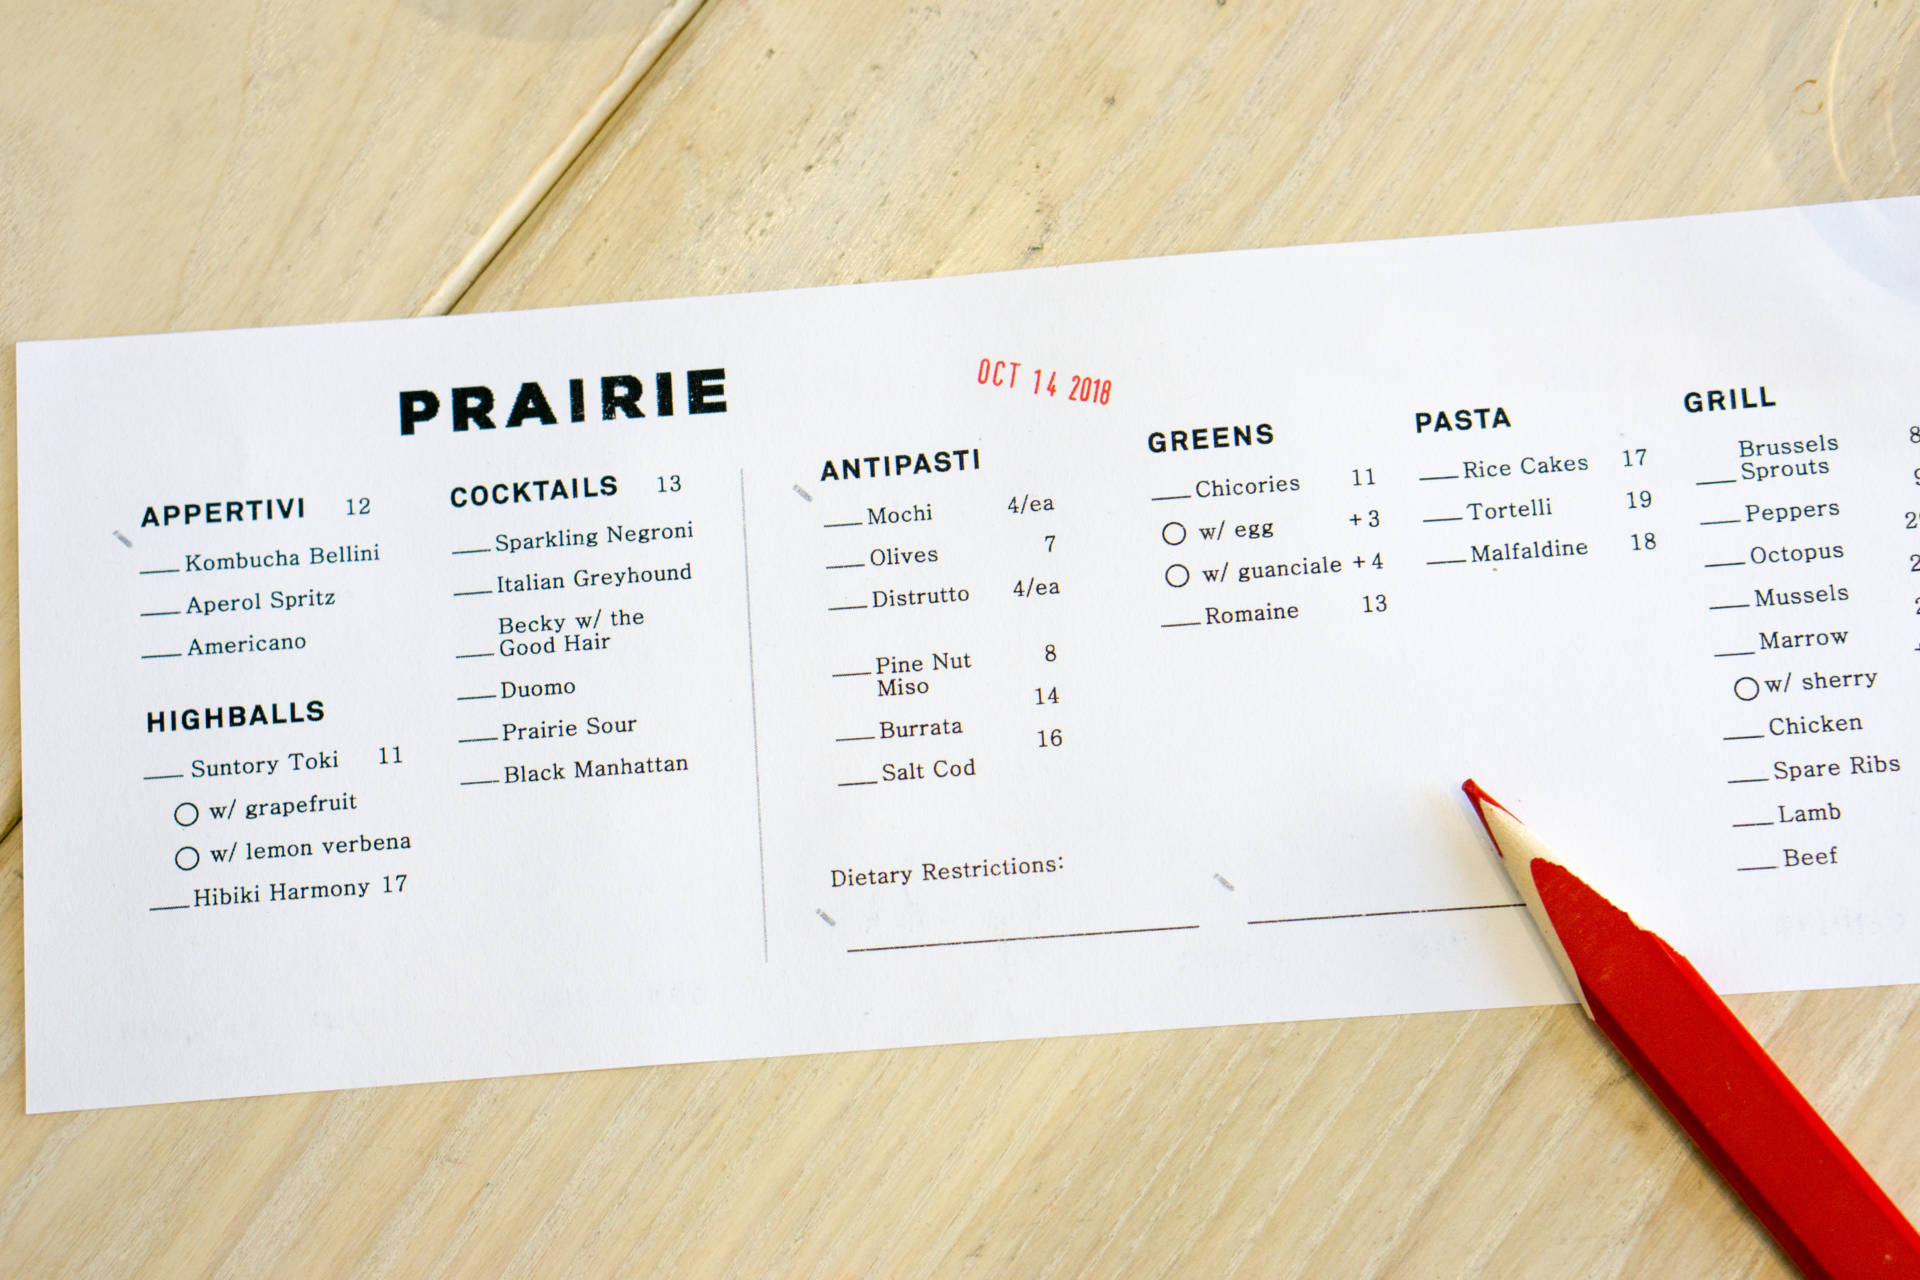 An ordering menu at Prairie.